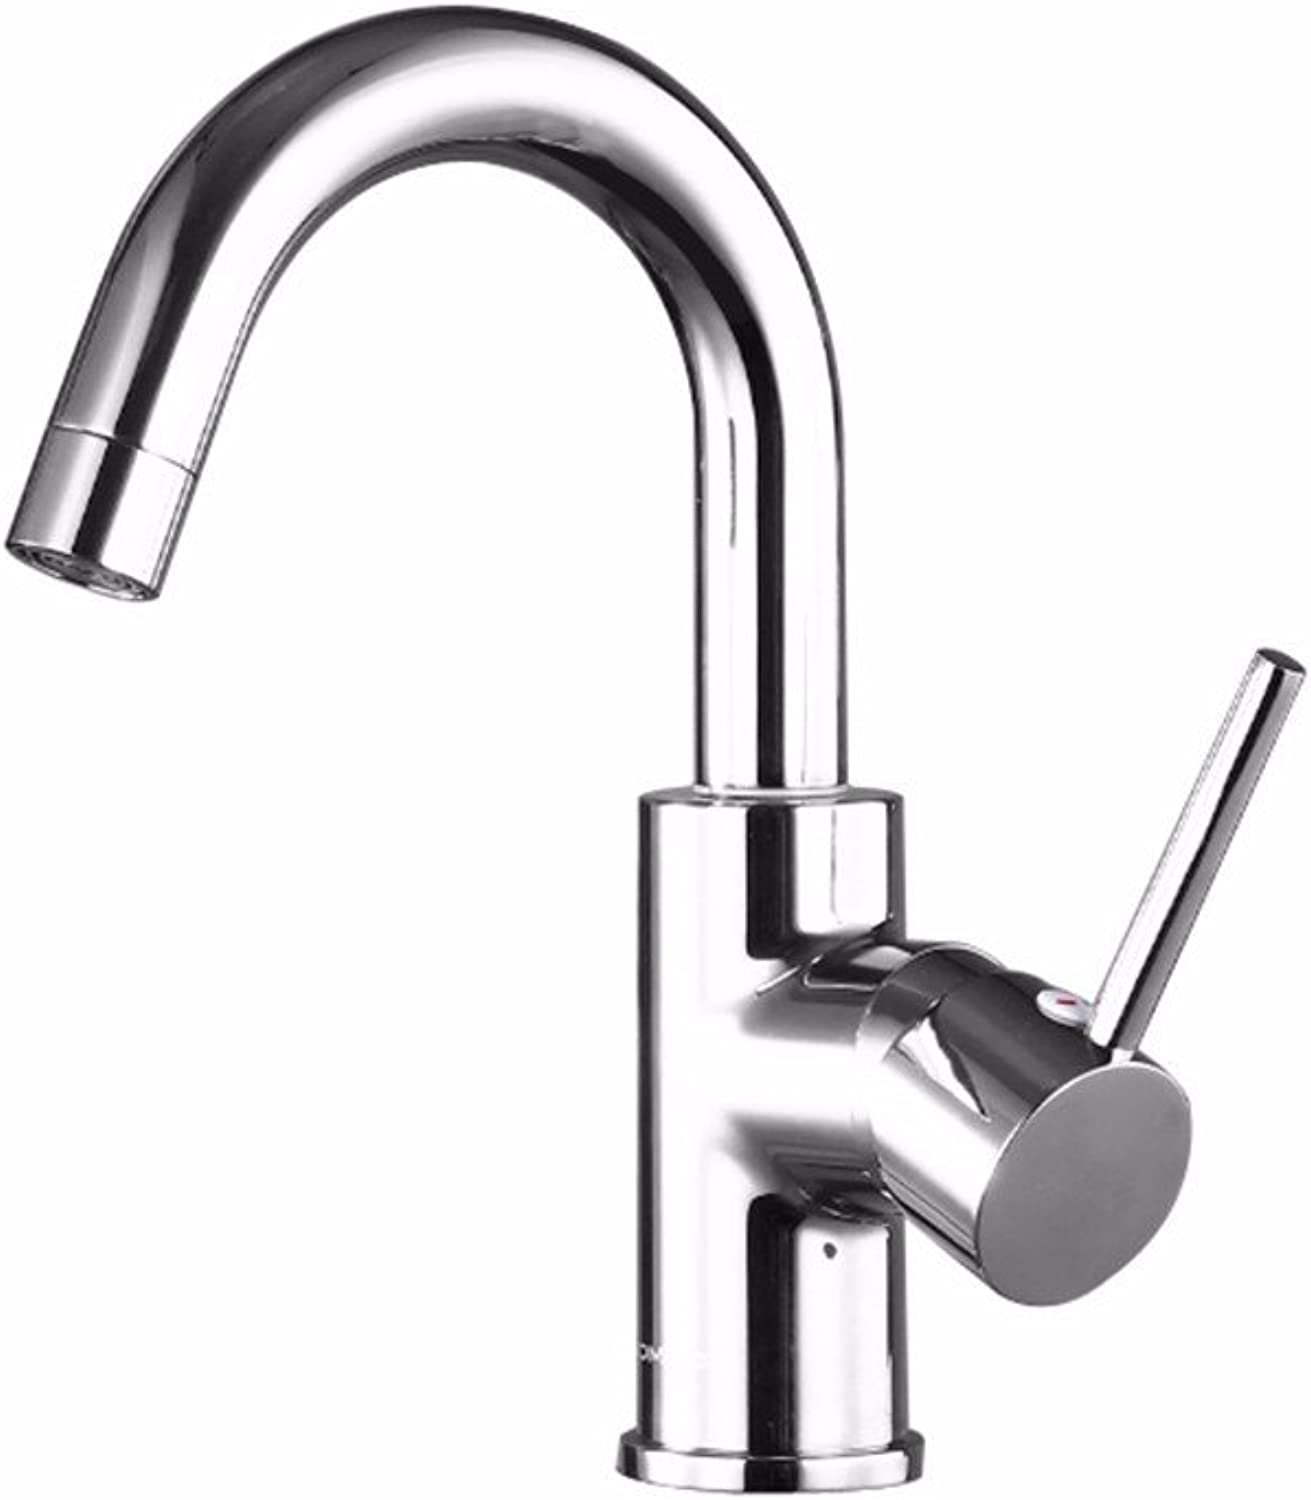 LHbox Basin Mixer Tap Bathroom Sink Faucet Single Handle single hole hot and cold basin to redate the wash basin Washbasin Faucet